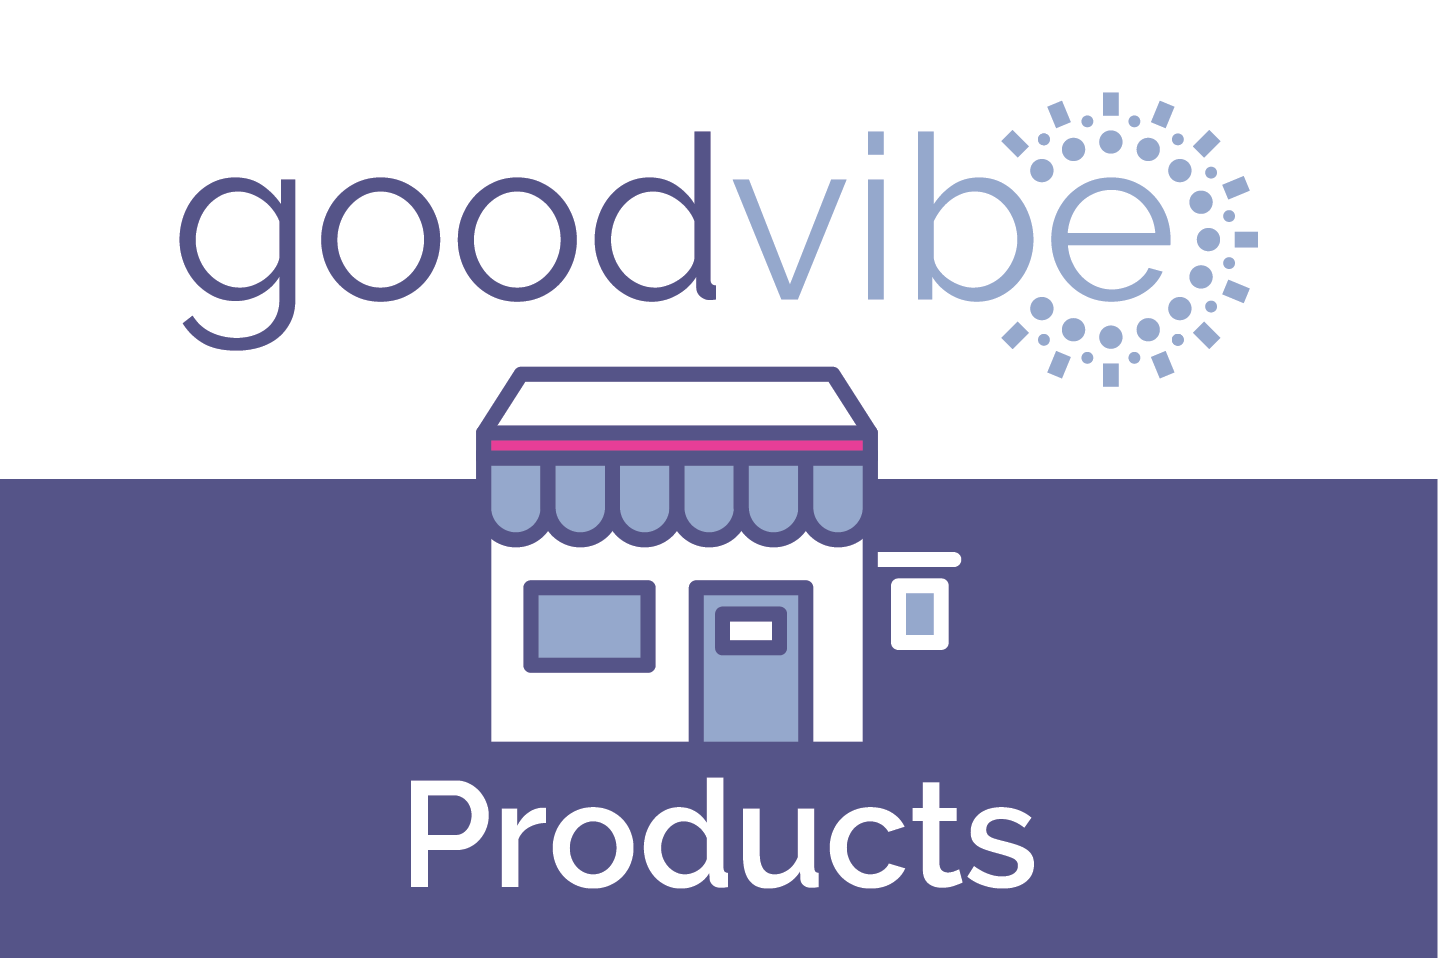 goodvibe products